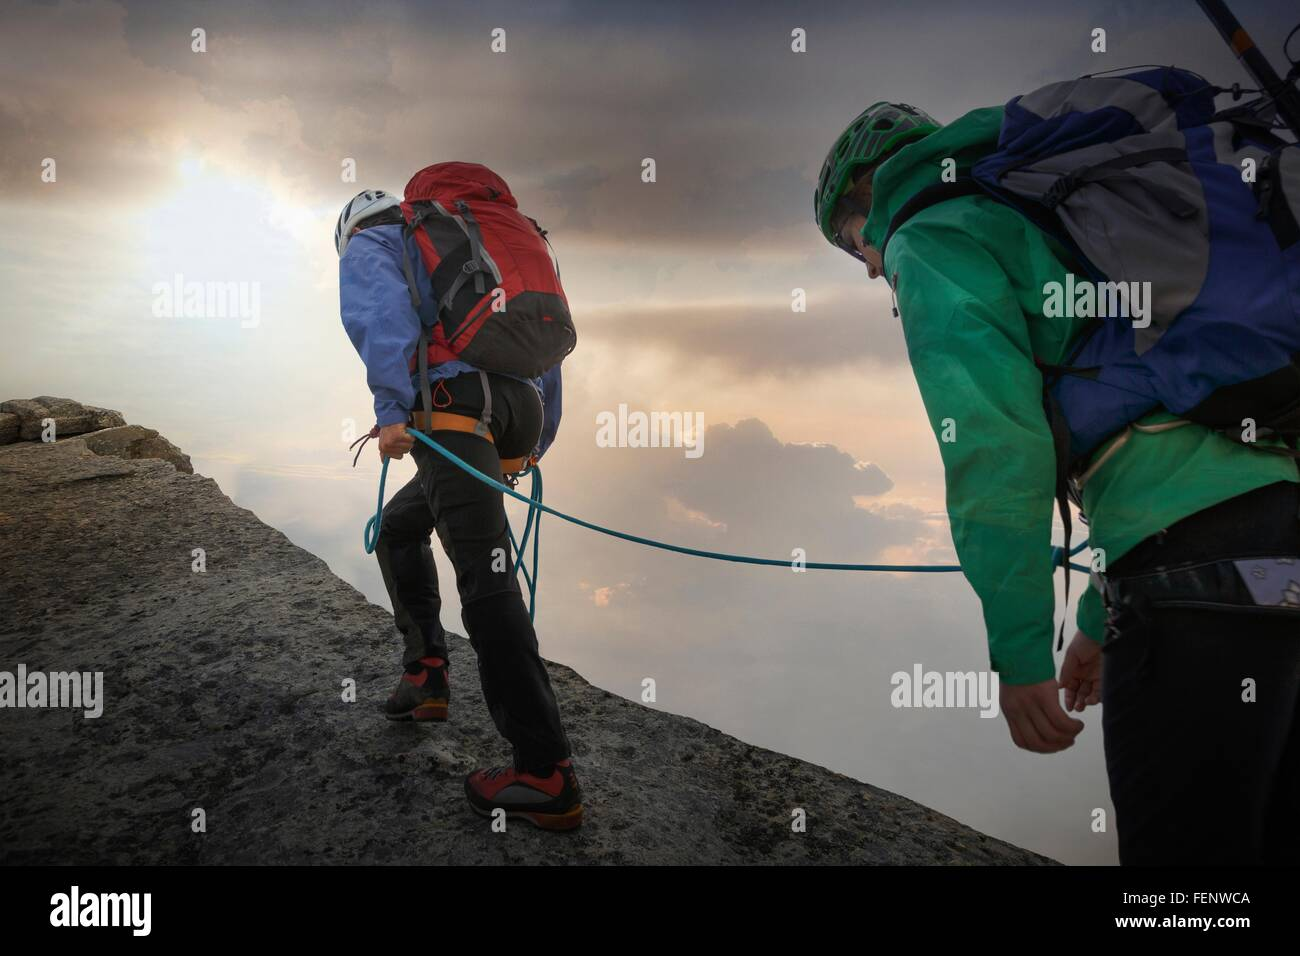 Climbers on mountain ridge, Mont Blanc, France - Stock Image